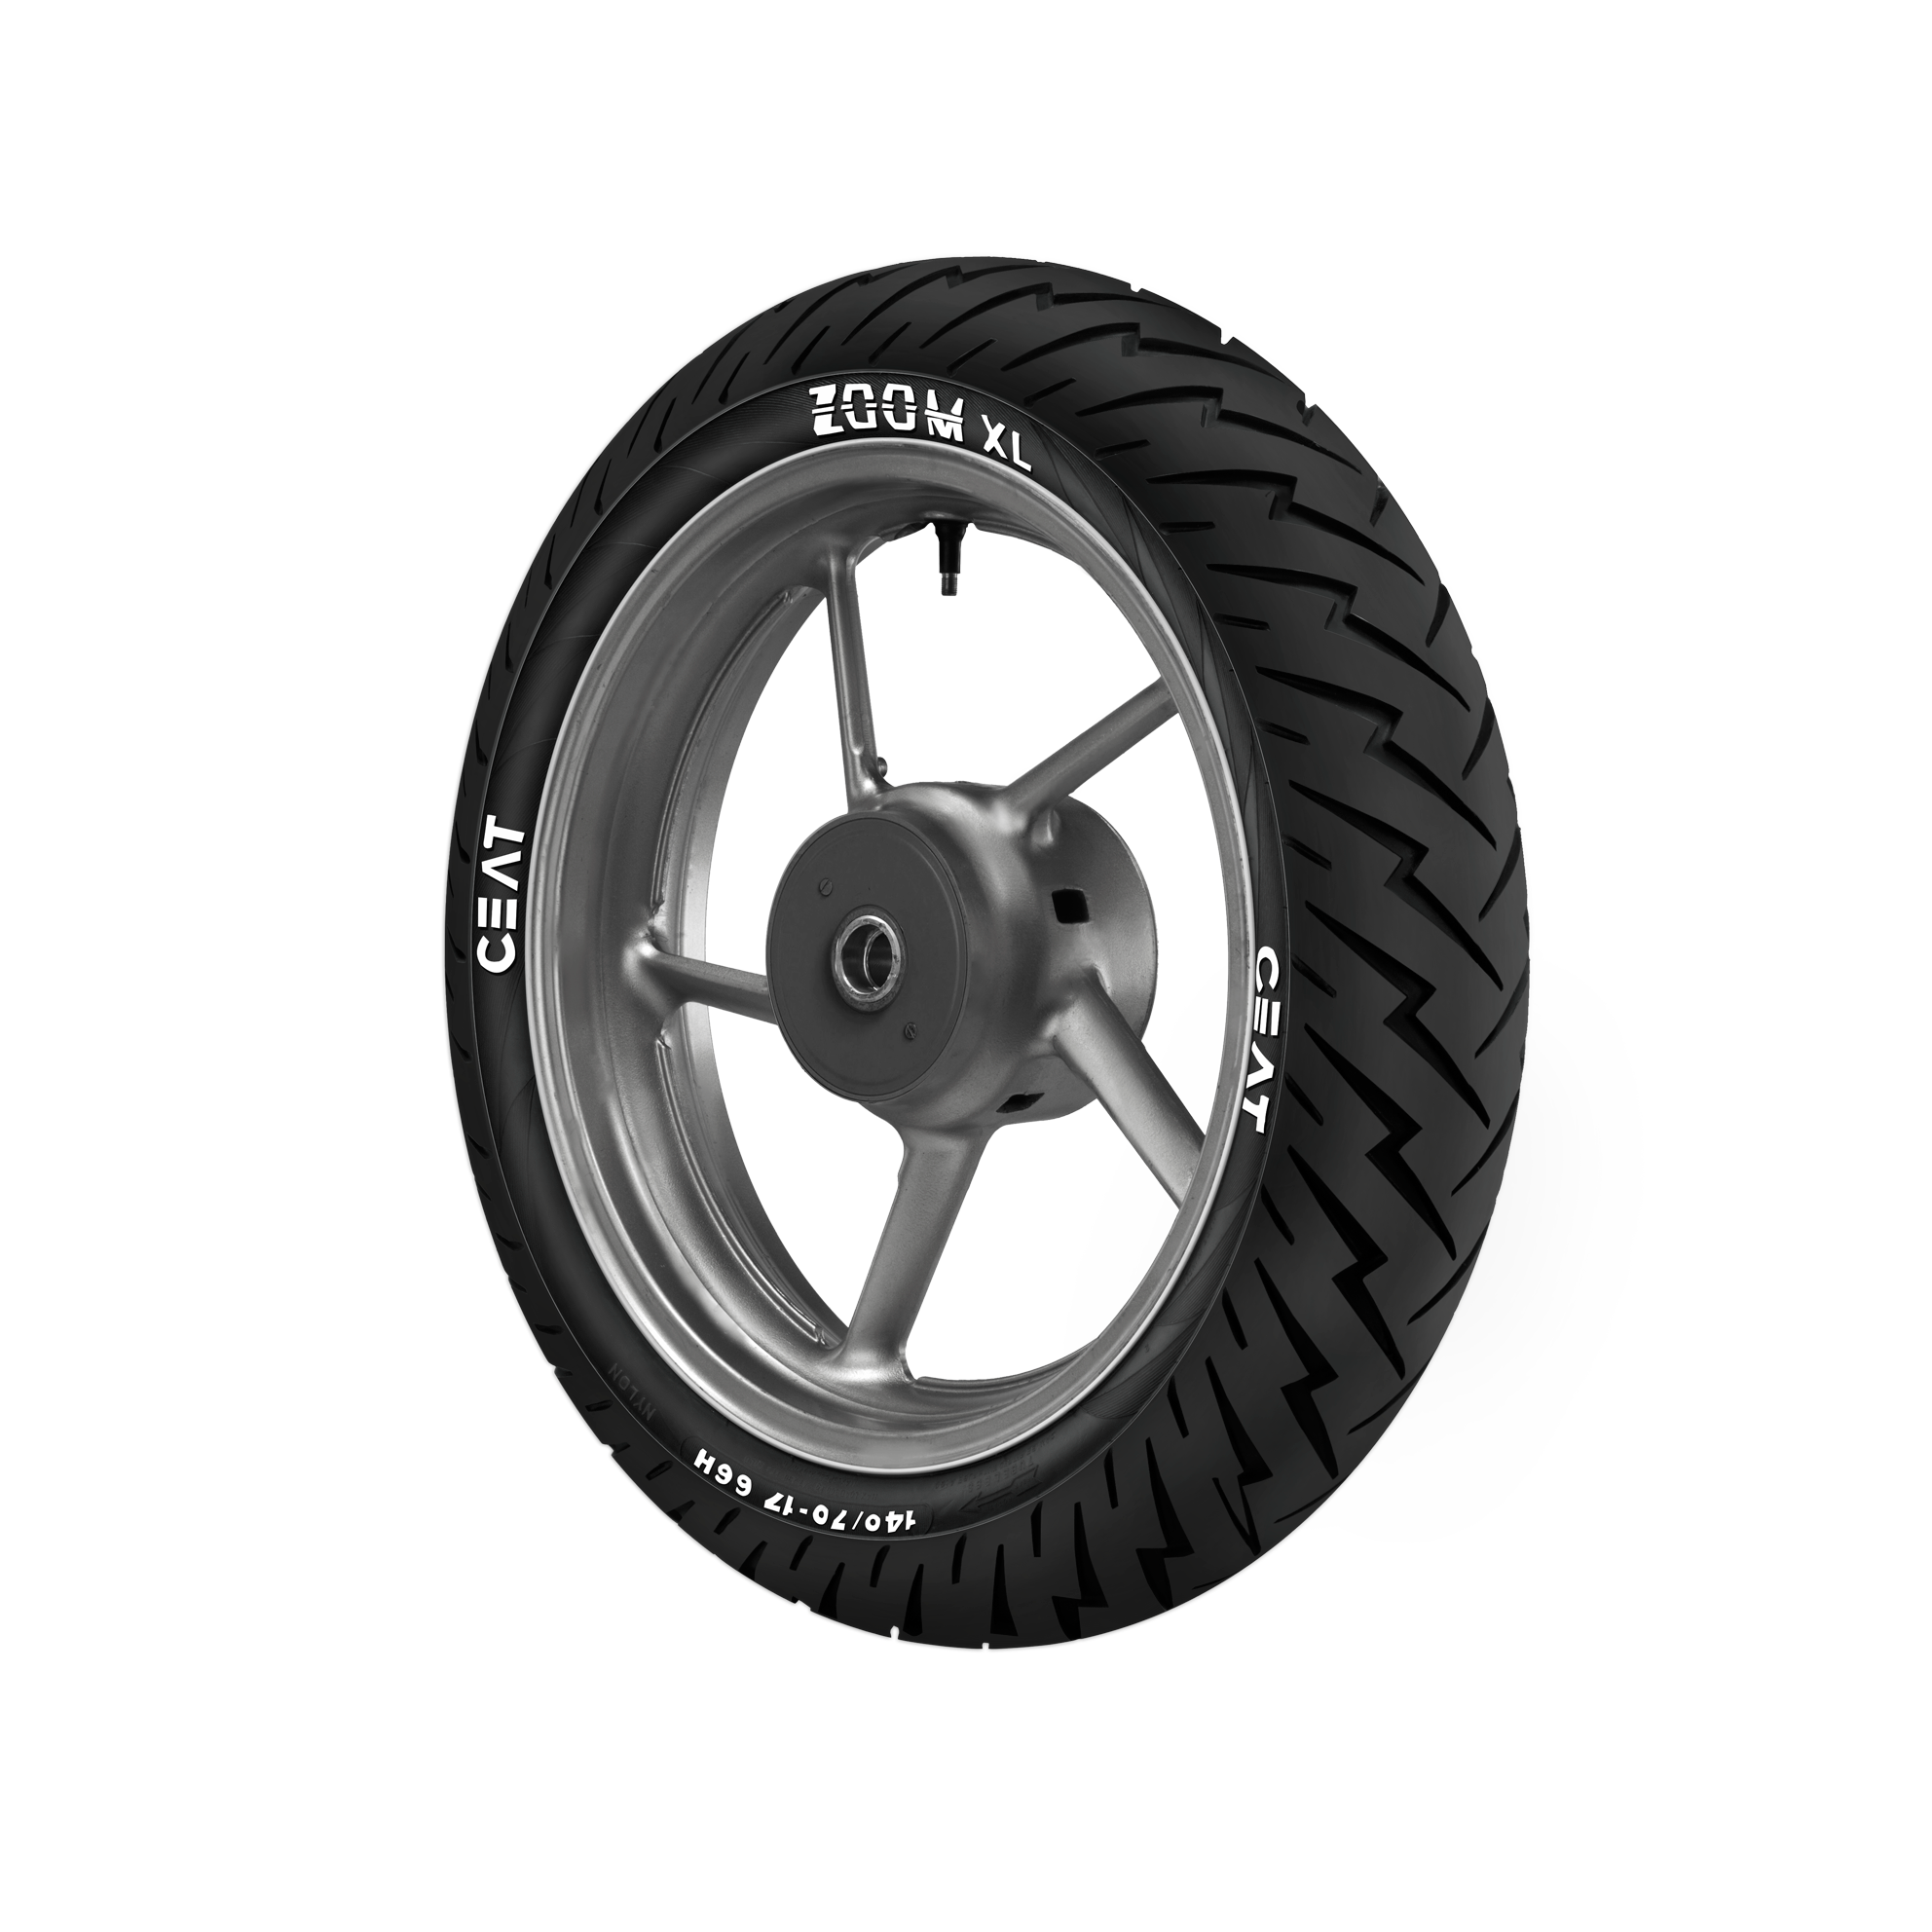 CEAT ZOOM XL 110/70 17 Tubeless 54 H Front Two-Wheeler Tyre